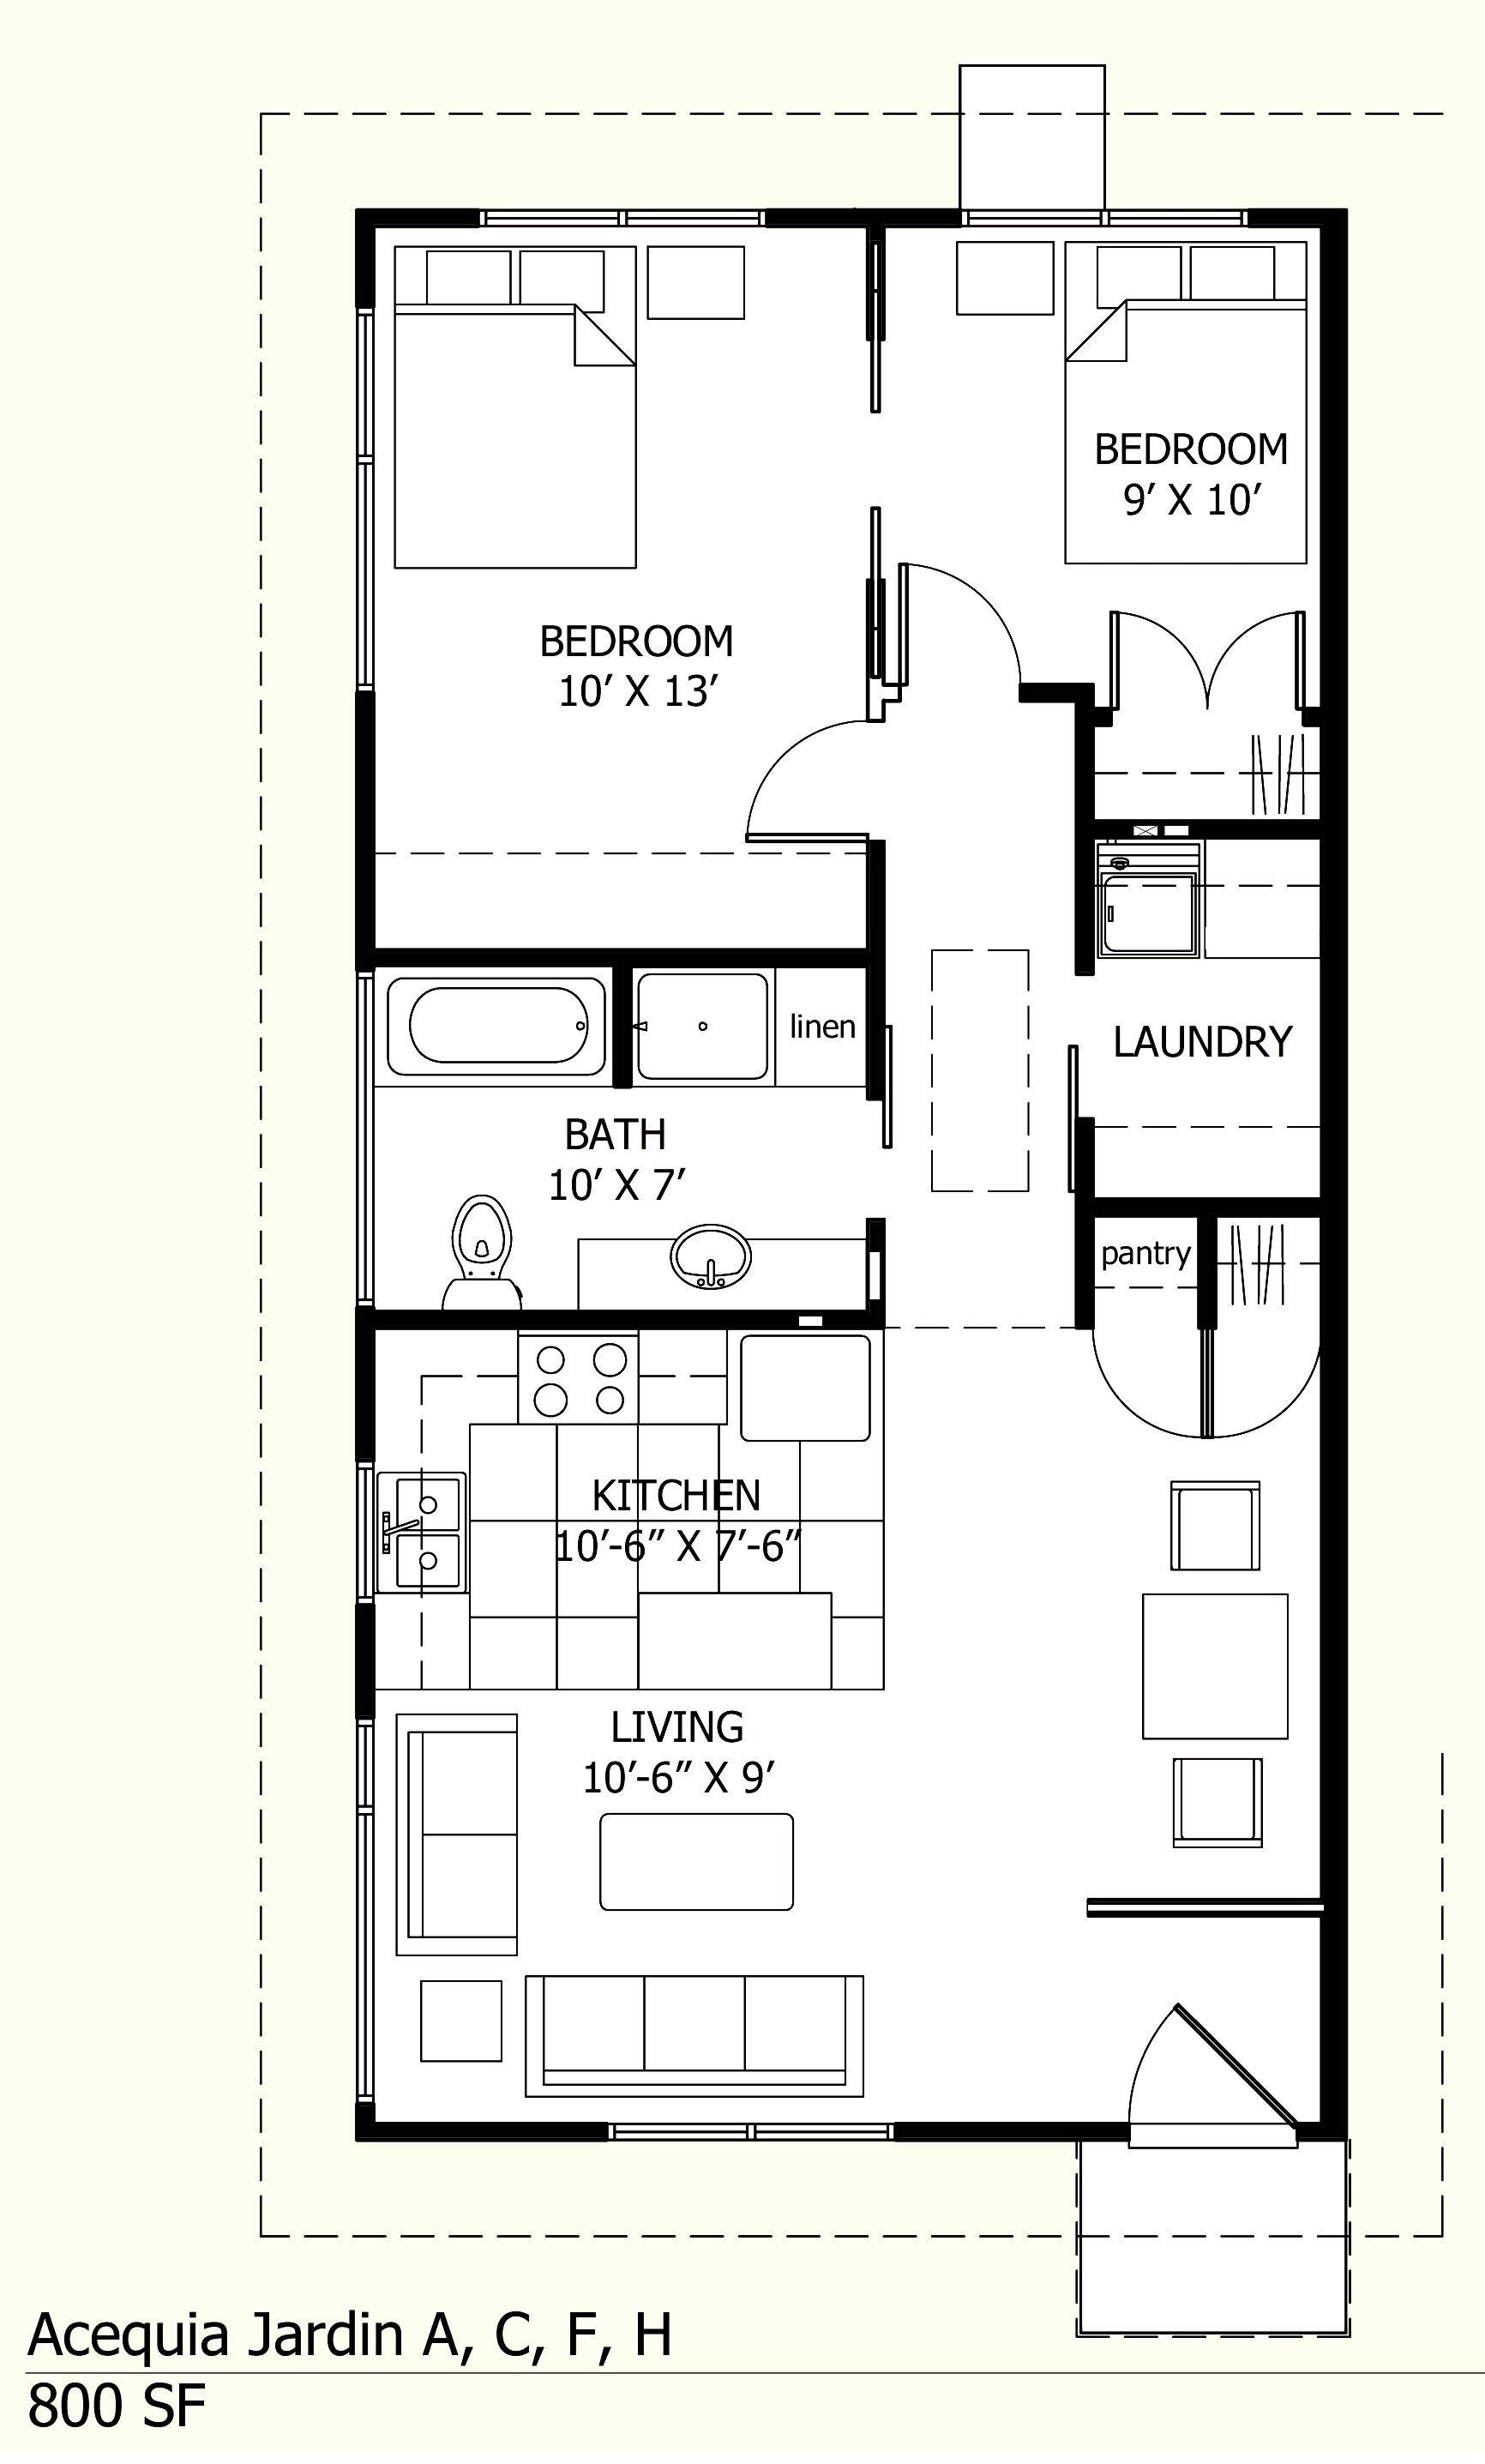 Small House Plans Under 600 Sq Ft Stephniepalma 600 Sf